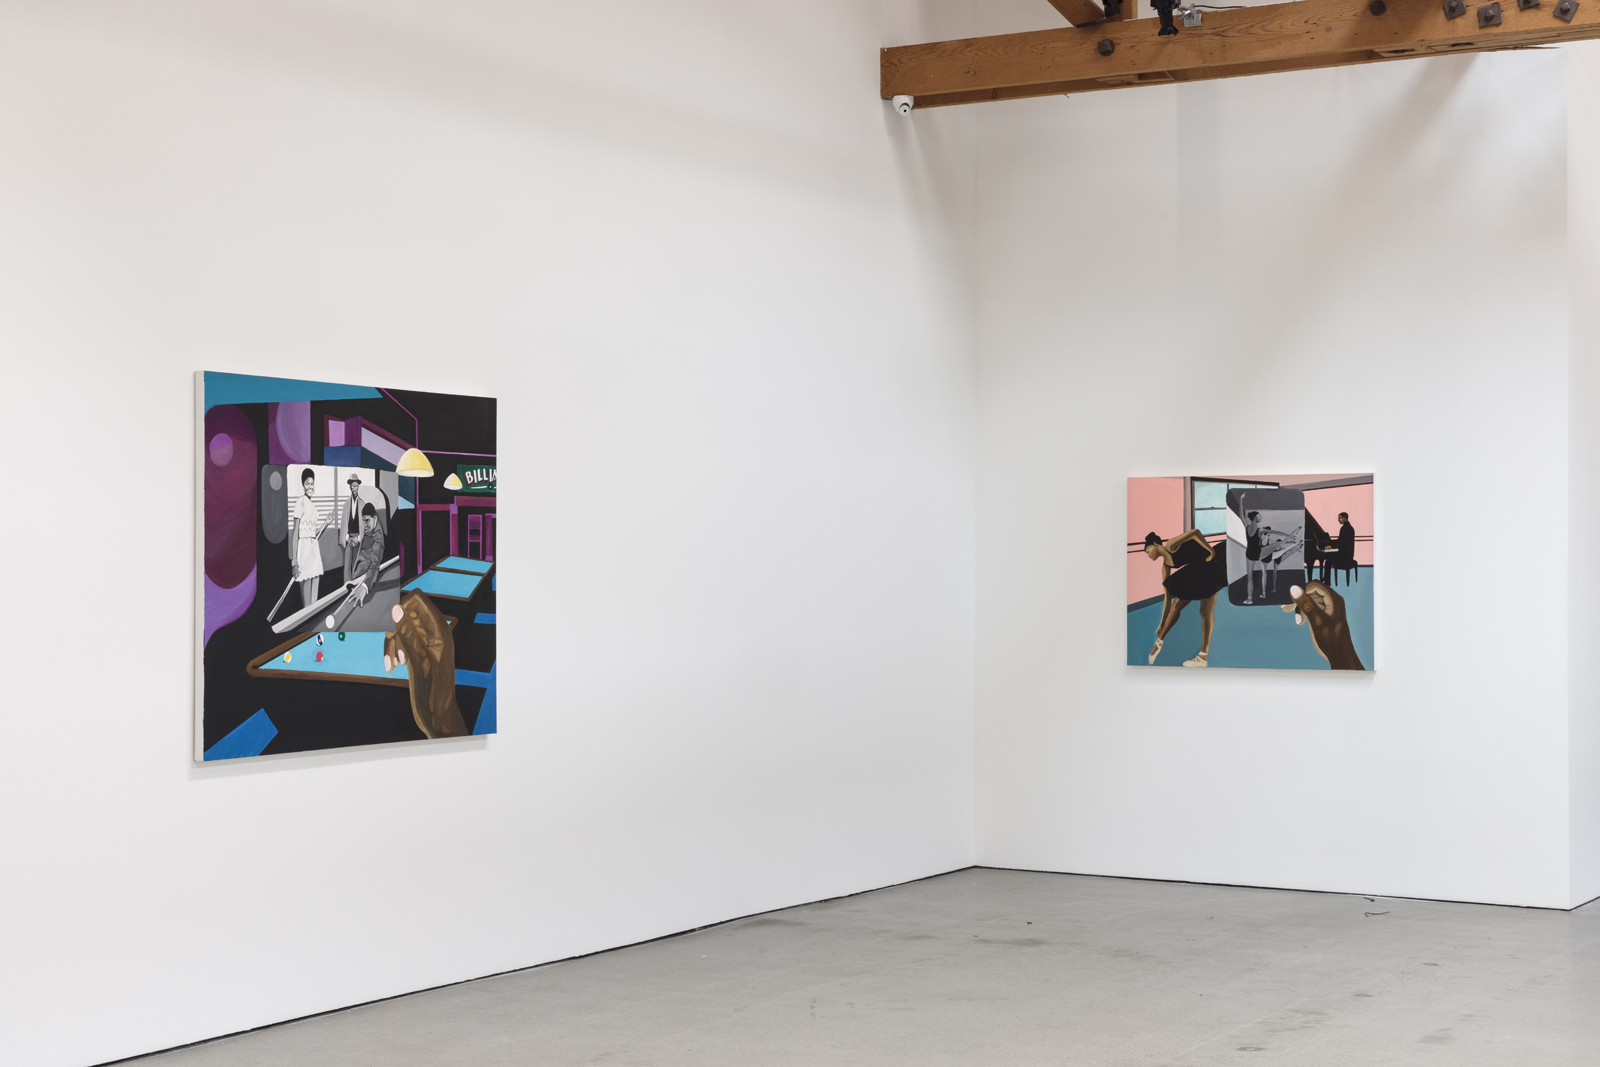 installation view of blitz bazawule a moment in time with 2 paintings hanging in gallery space